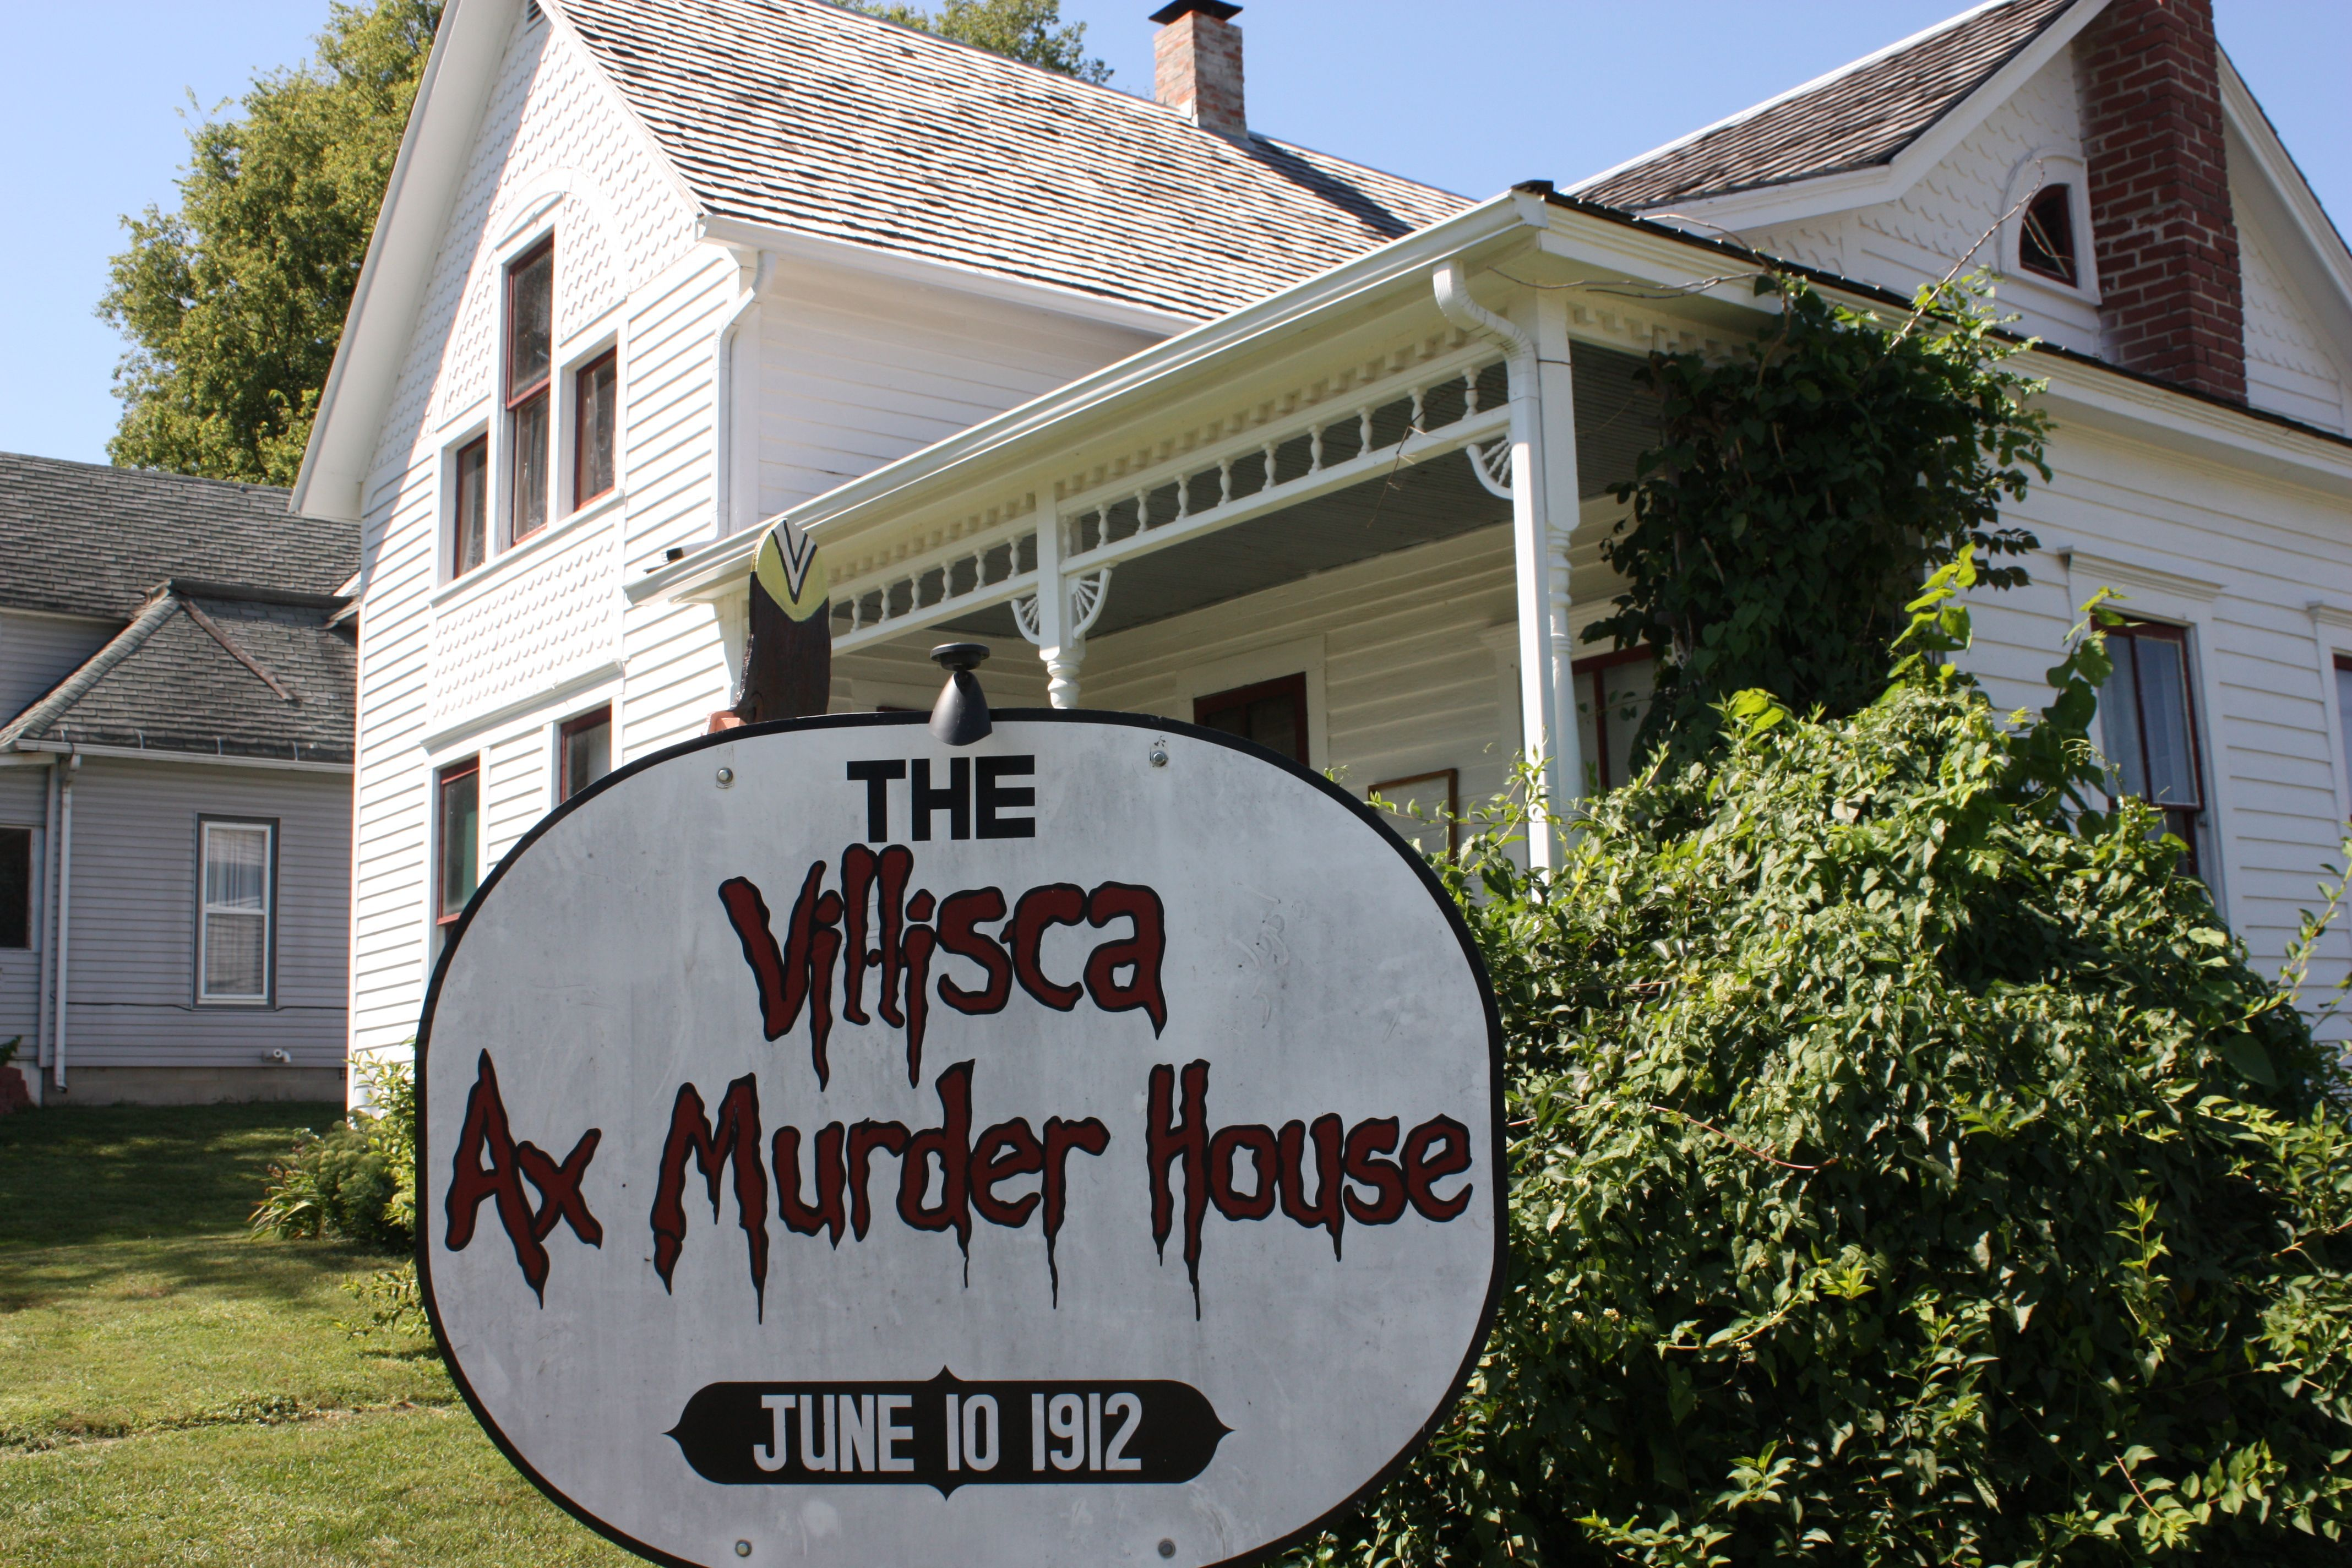 10 of America's Most Haunted Places #horror #haunted http://incredibled.com/10-of-americas-most-haunted-places/